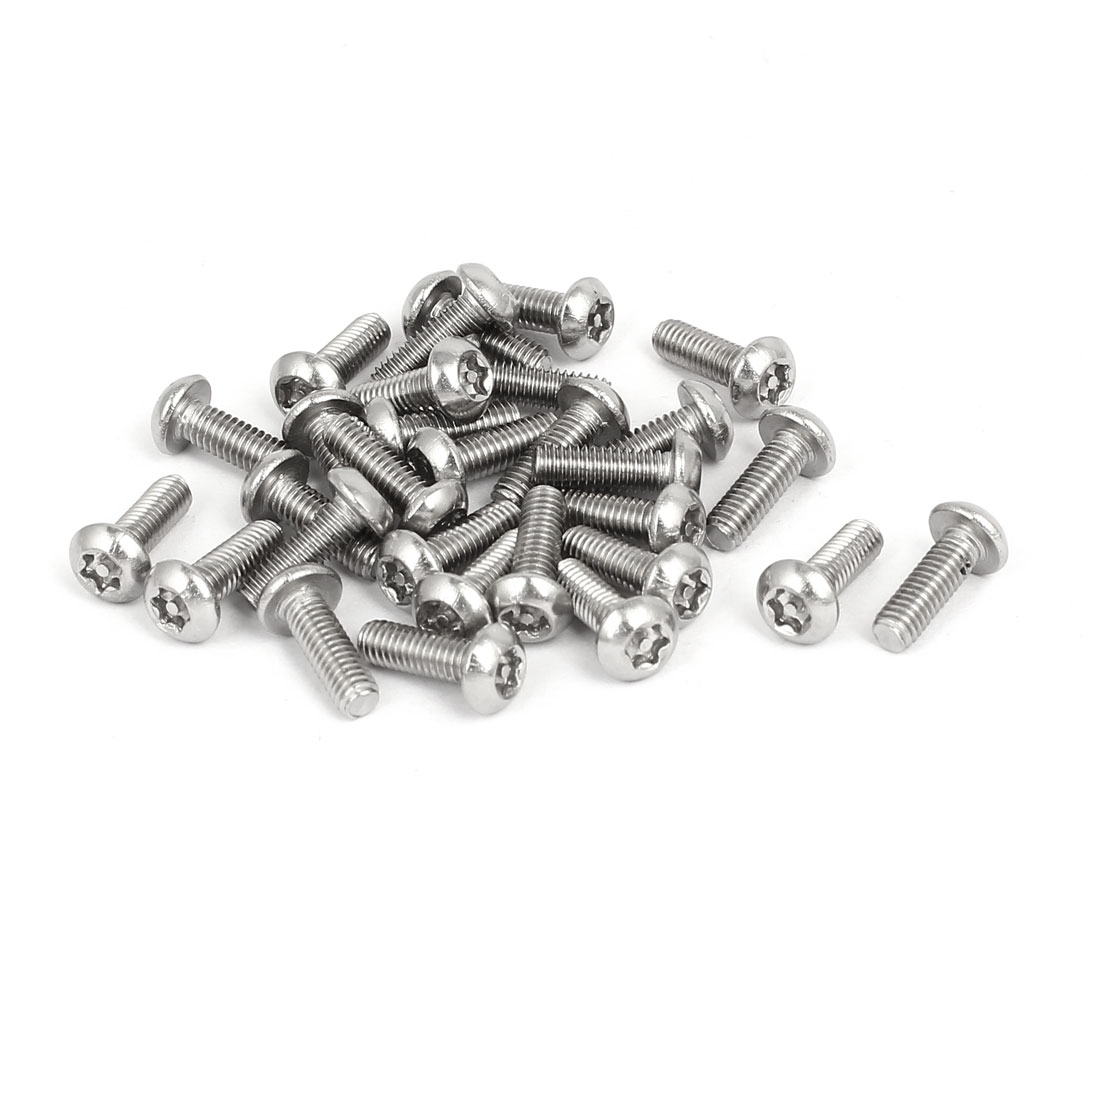 M4x12mm 304 Stainless Steel Button Head Torx Tamper Resistant Screws 30pcs